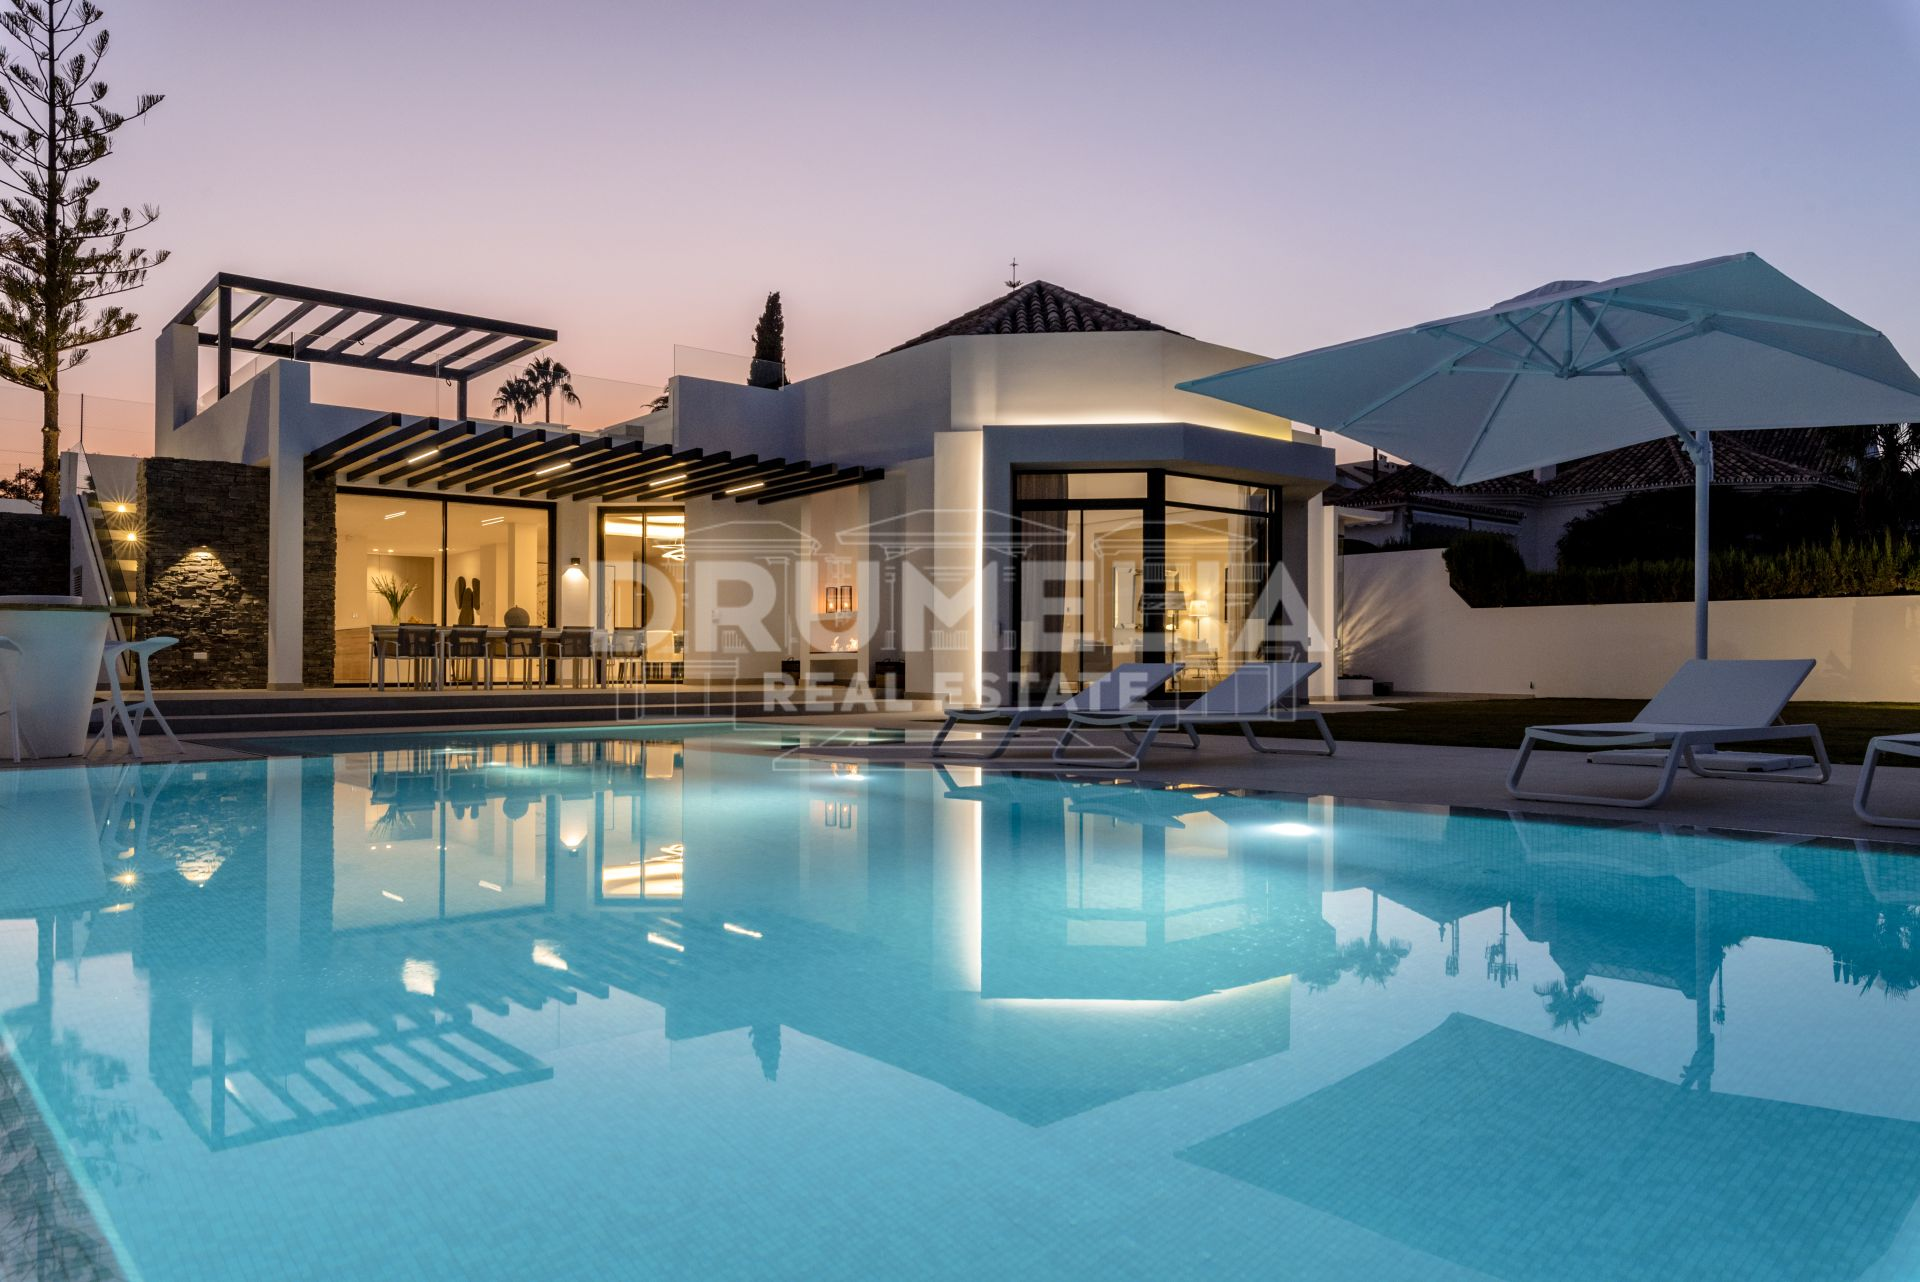 Nueva Andalucia, New Stylish Frontline Golf State-of-the-art Modern Luxury Villa, Aloha Golf Club, Nueva Andalucía, Marbella.